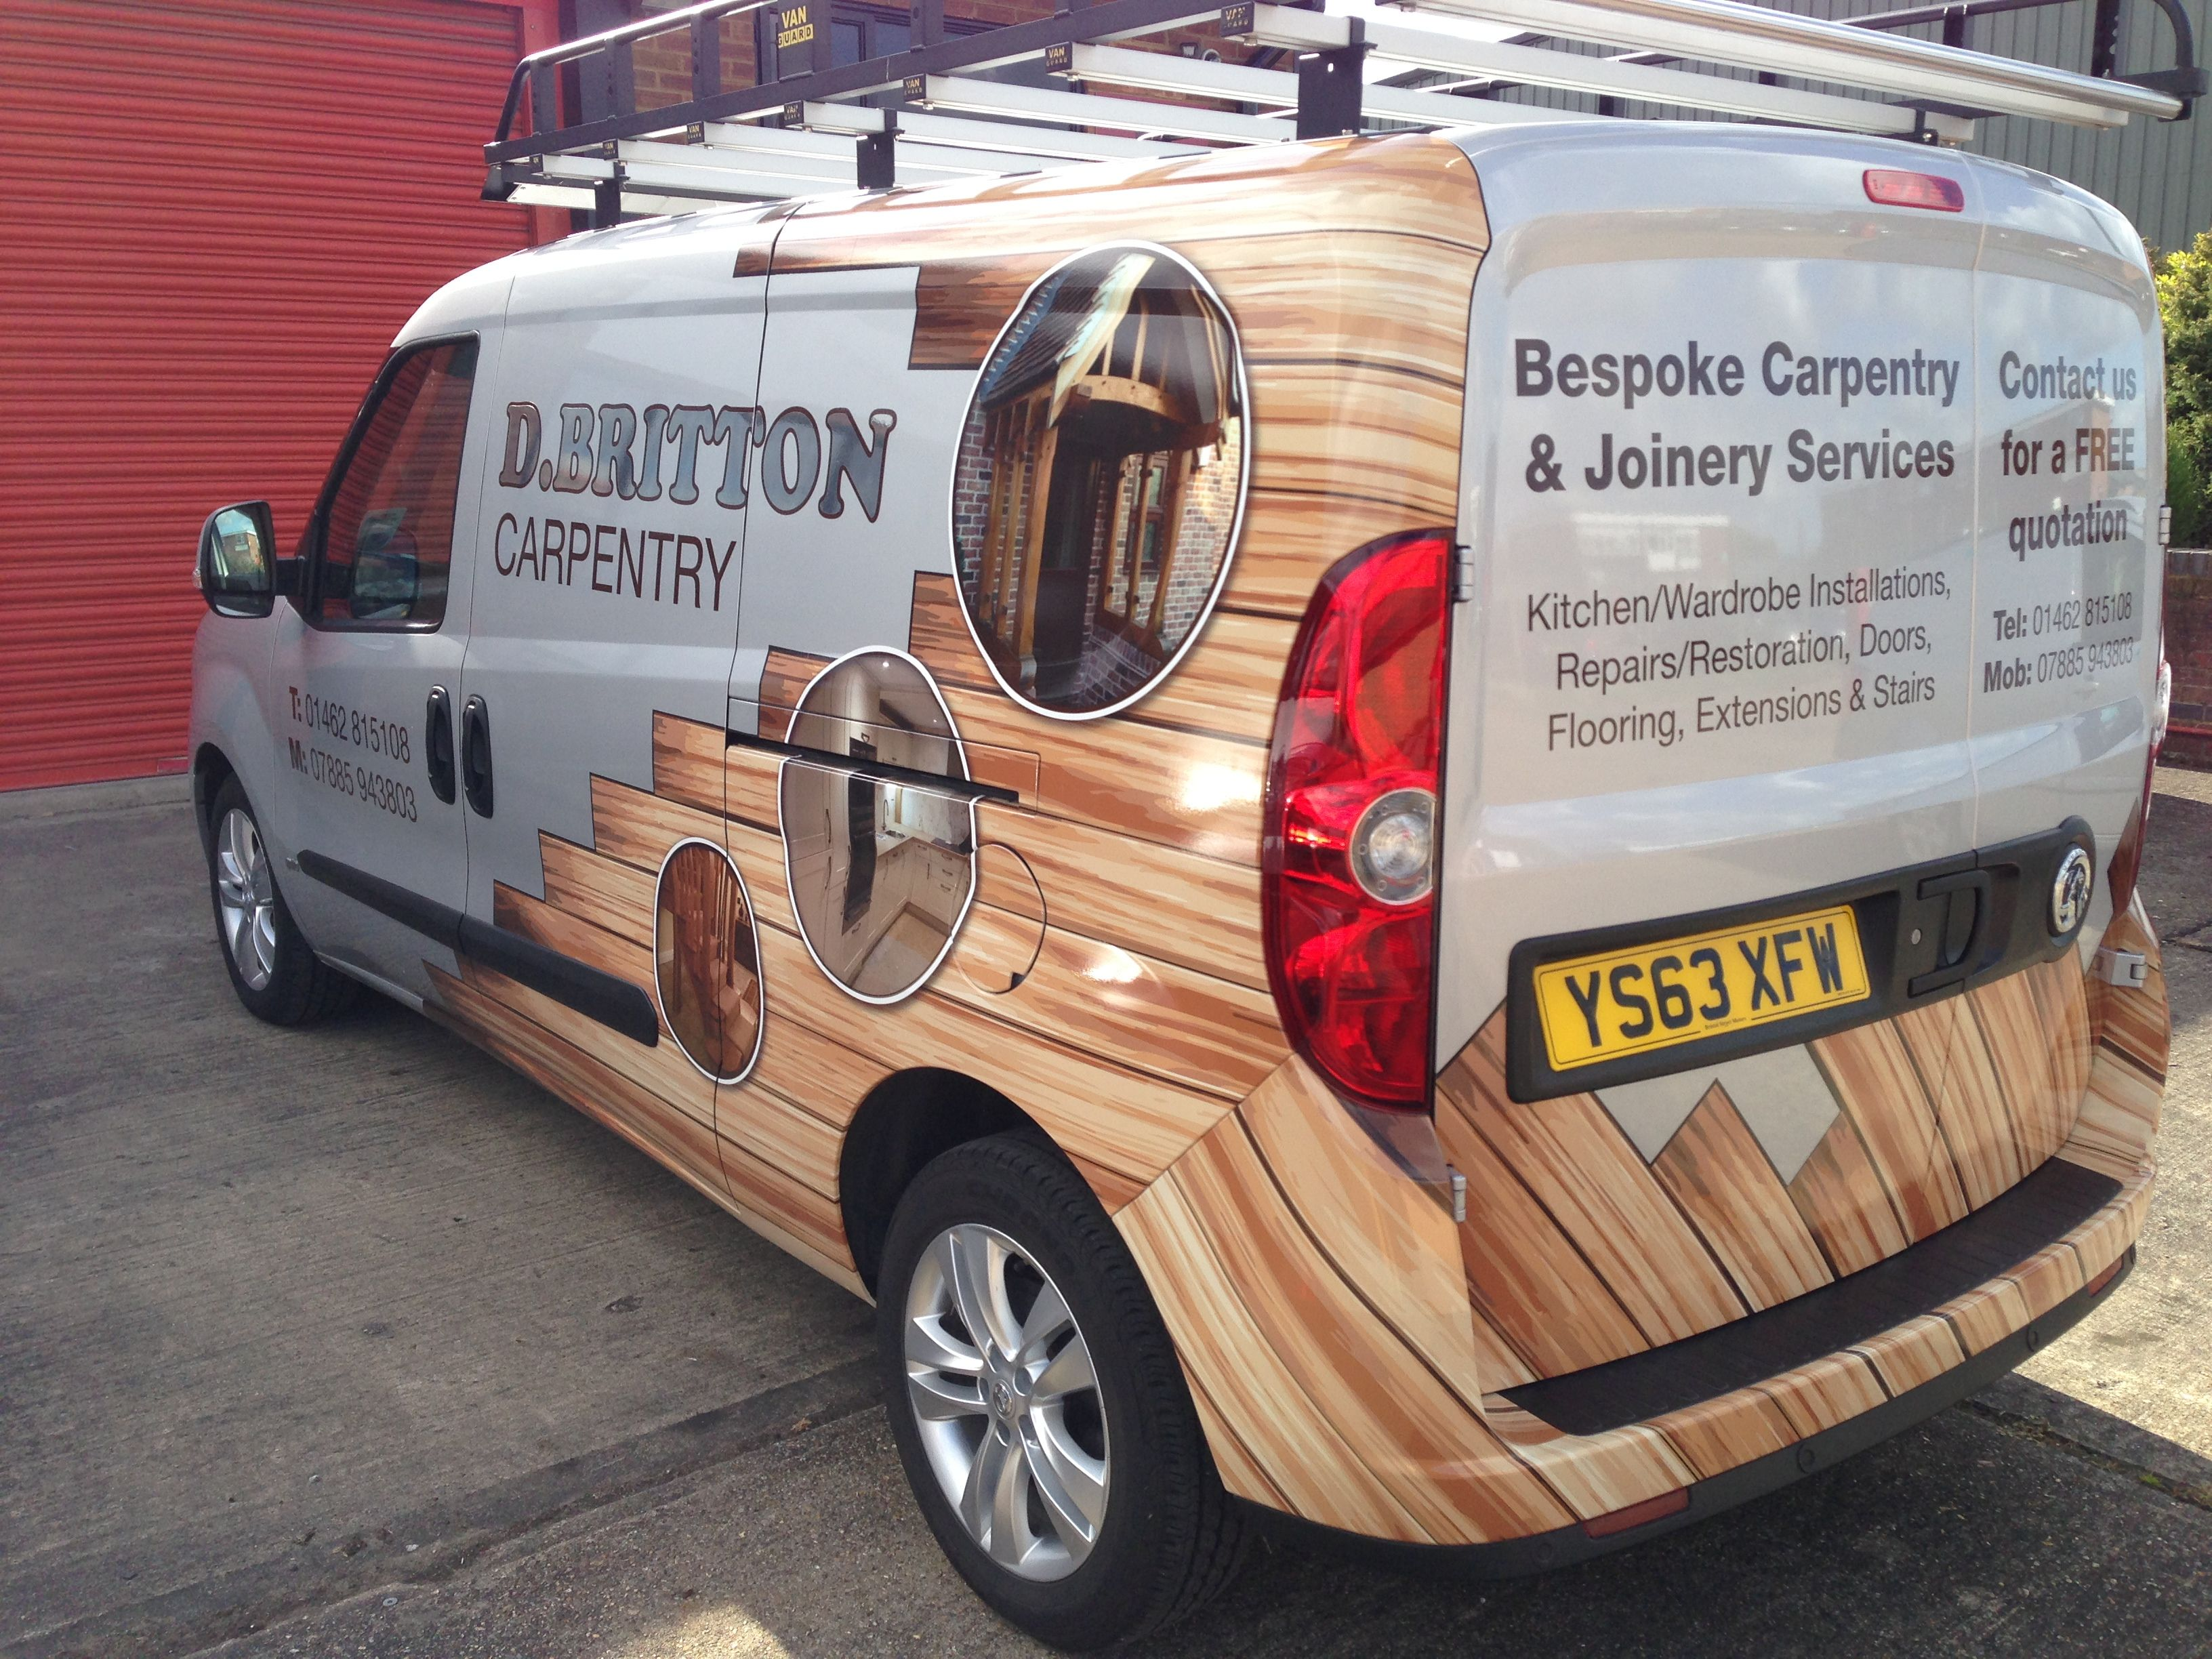 3m 1080 wood effect partial wrap vehicle